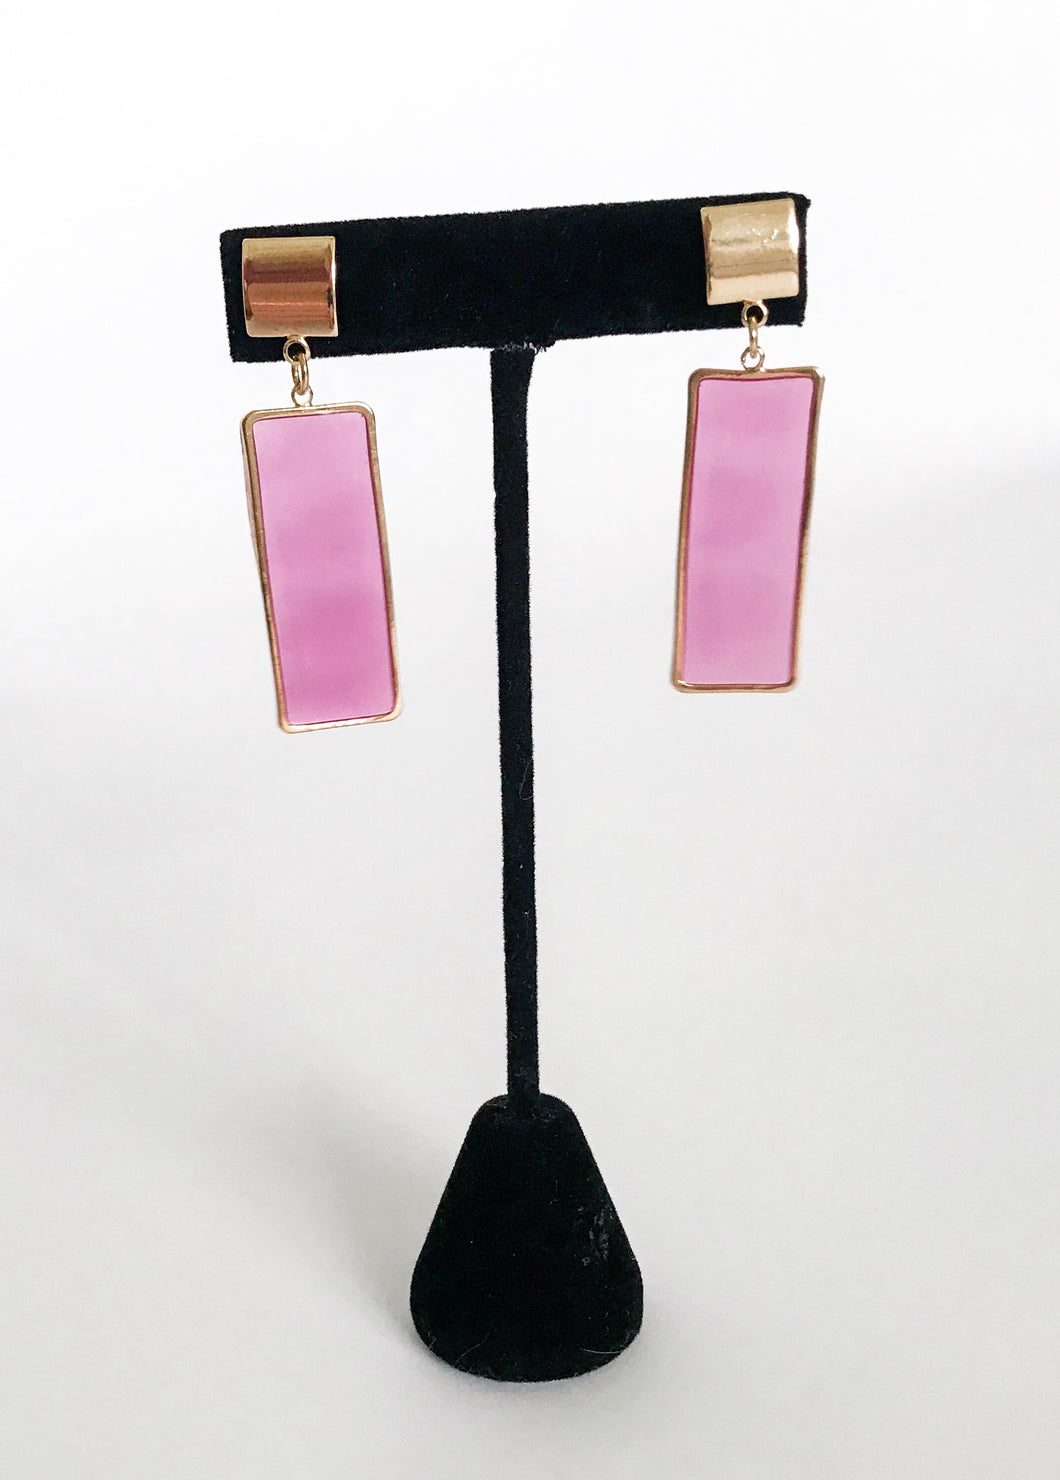 The Pretty in Pink Earrings